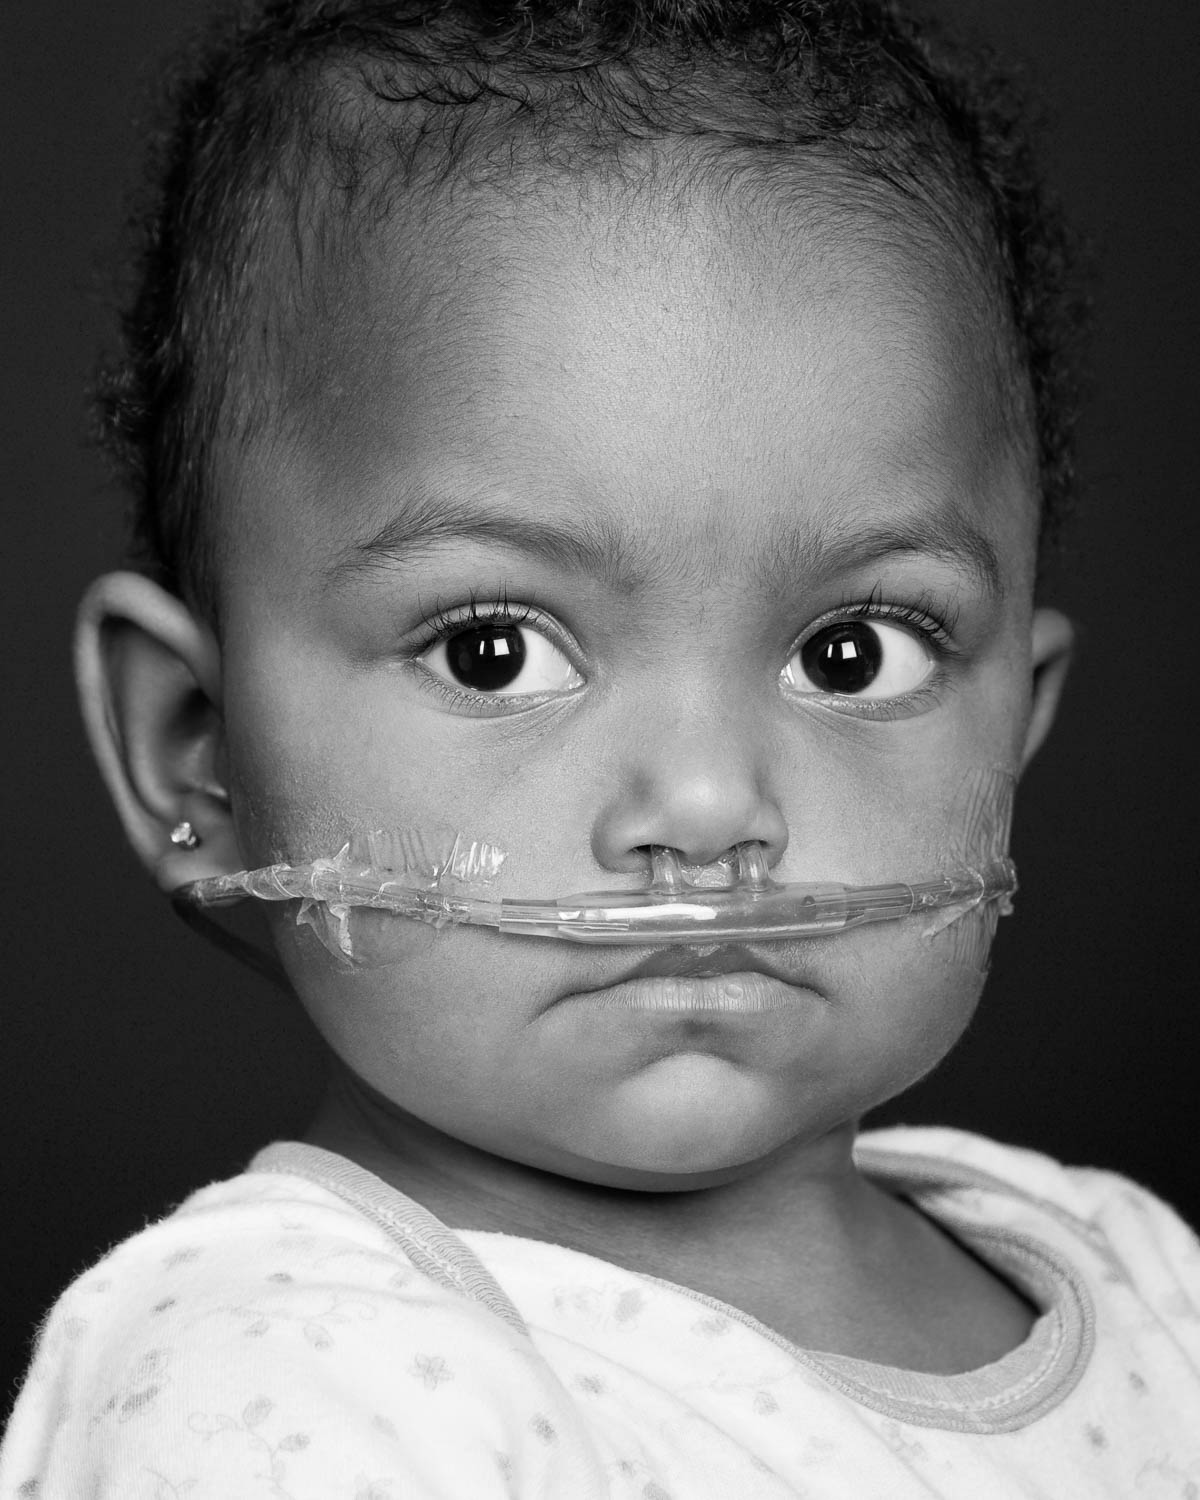 Flashes of Hope is a non-profit that creates uplifting portraits of children fighting cancer and other life-threatening illnesses.